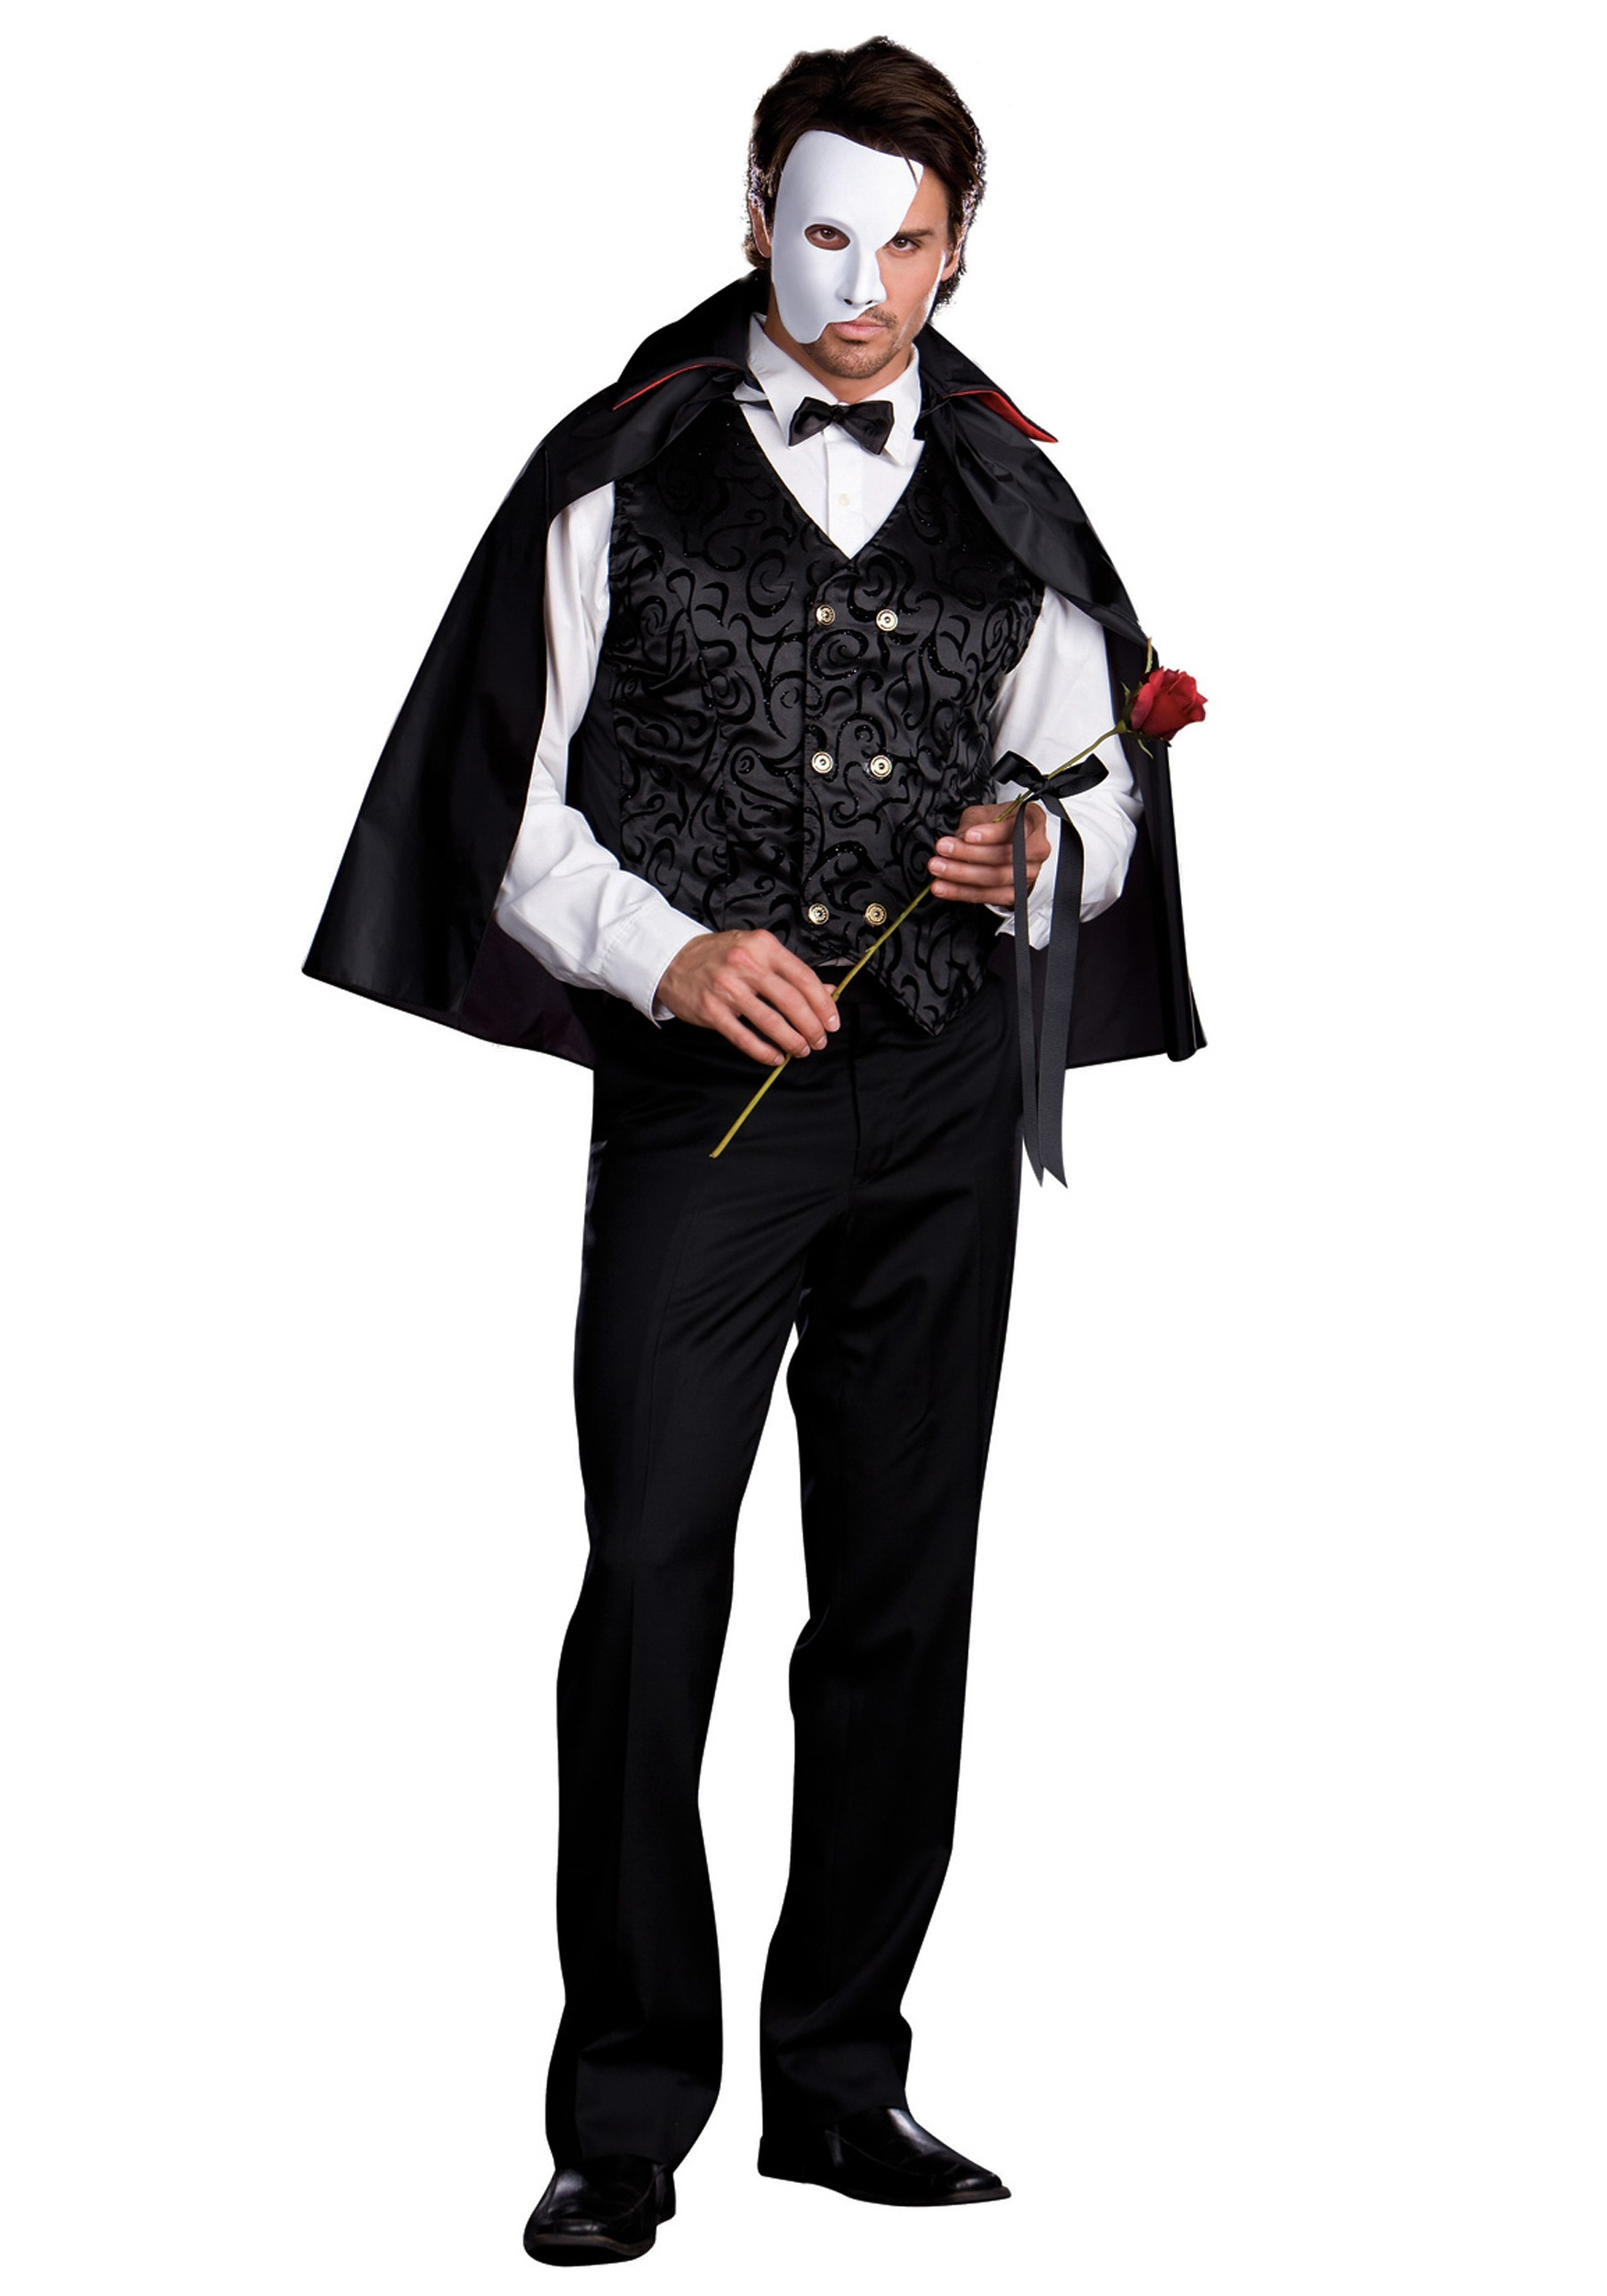 Mysterious Phantom Costume  sc 1 st  Halloween Costumes & Mysterious Phantom Costume - Halloween Costumes